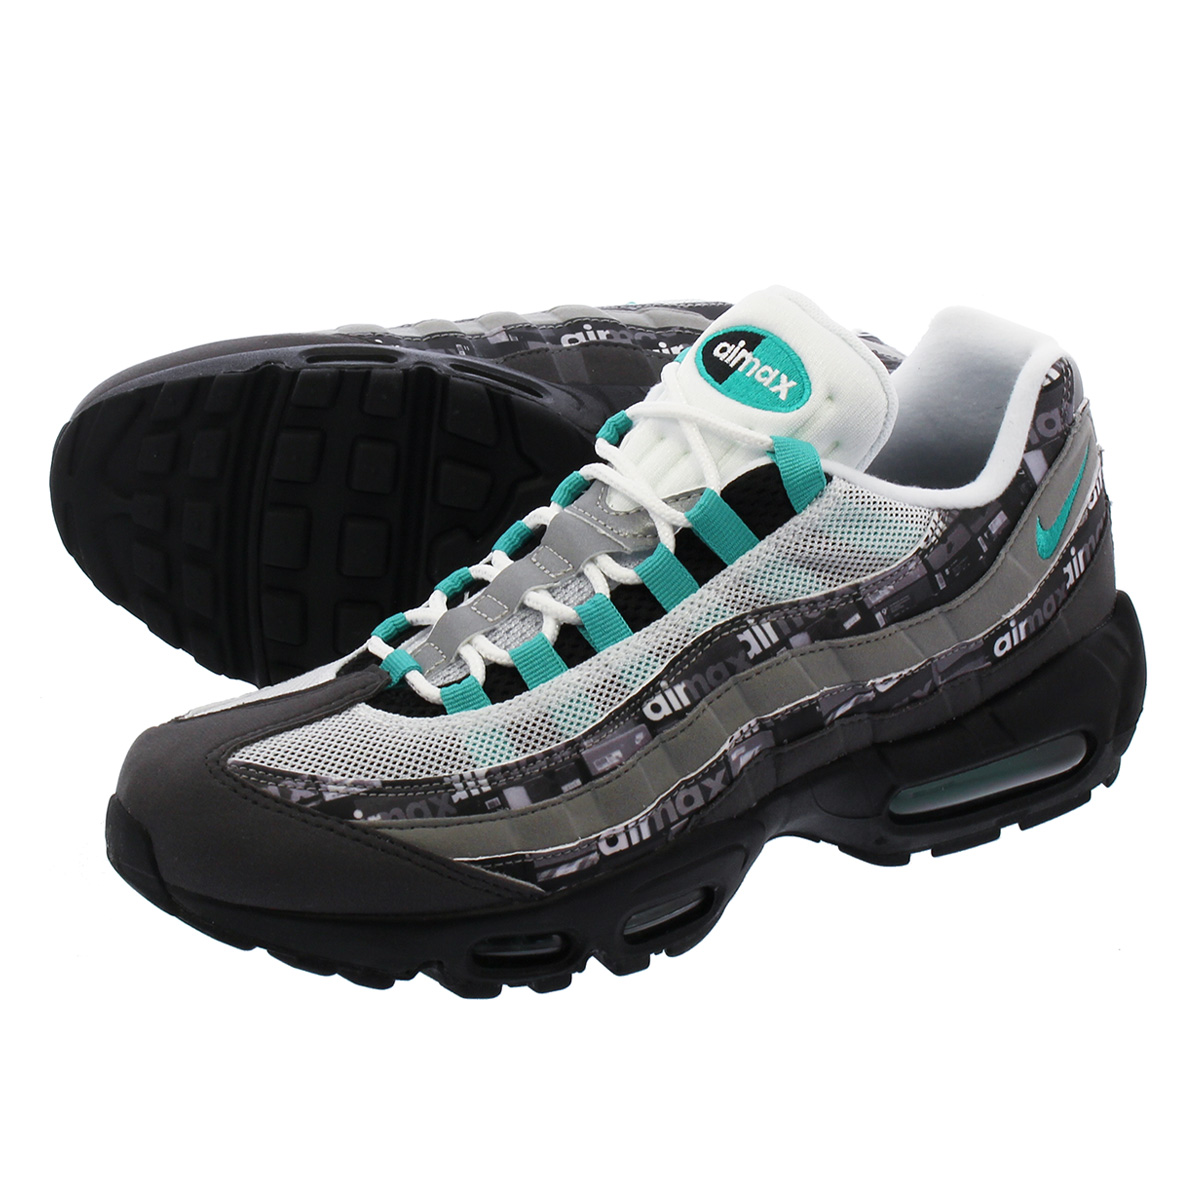 Nike AIR MAX 95 Men's Shoes Shoes Highest price